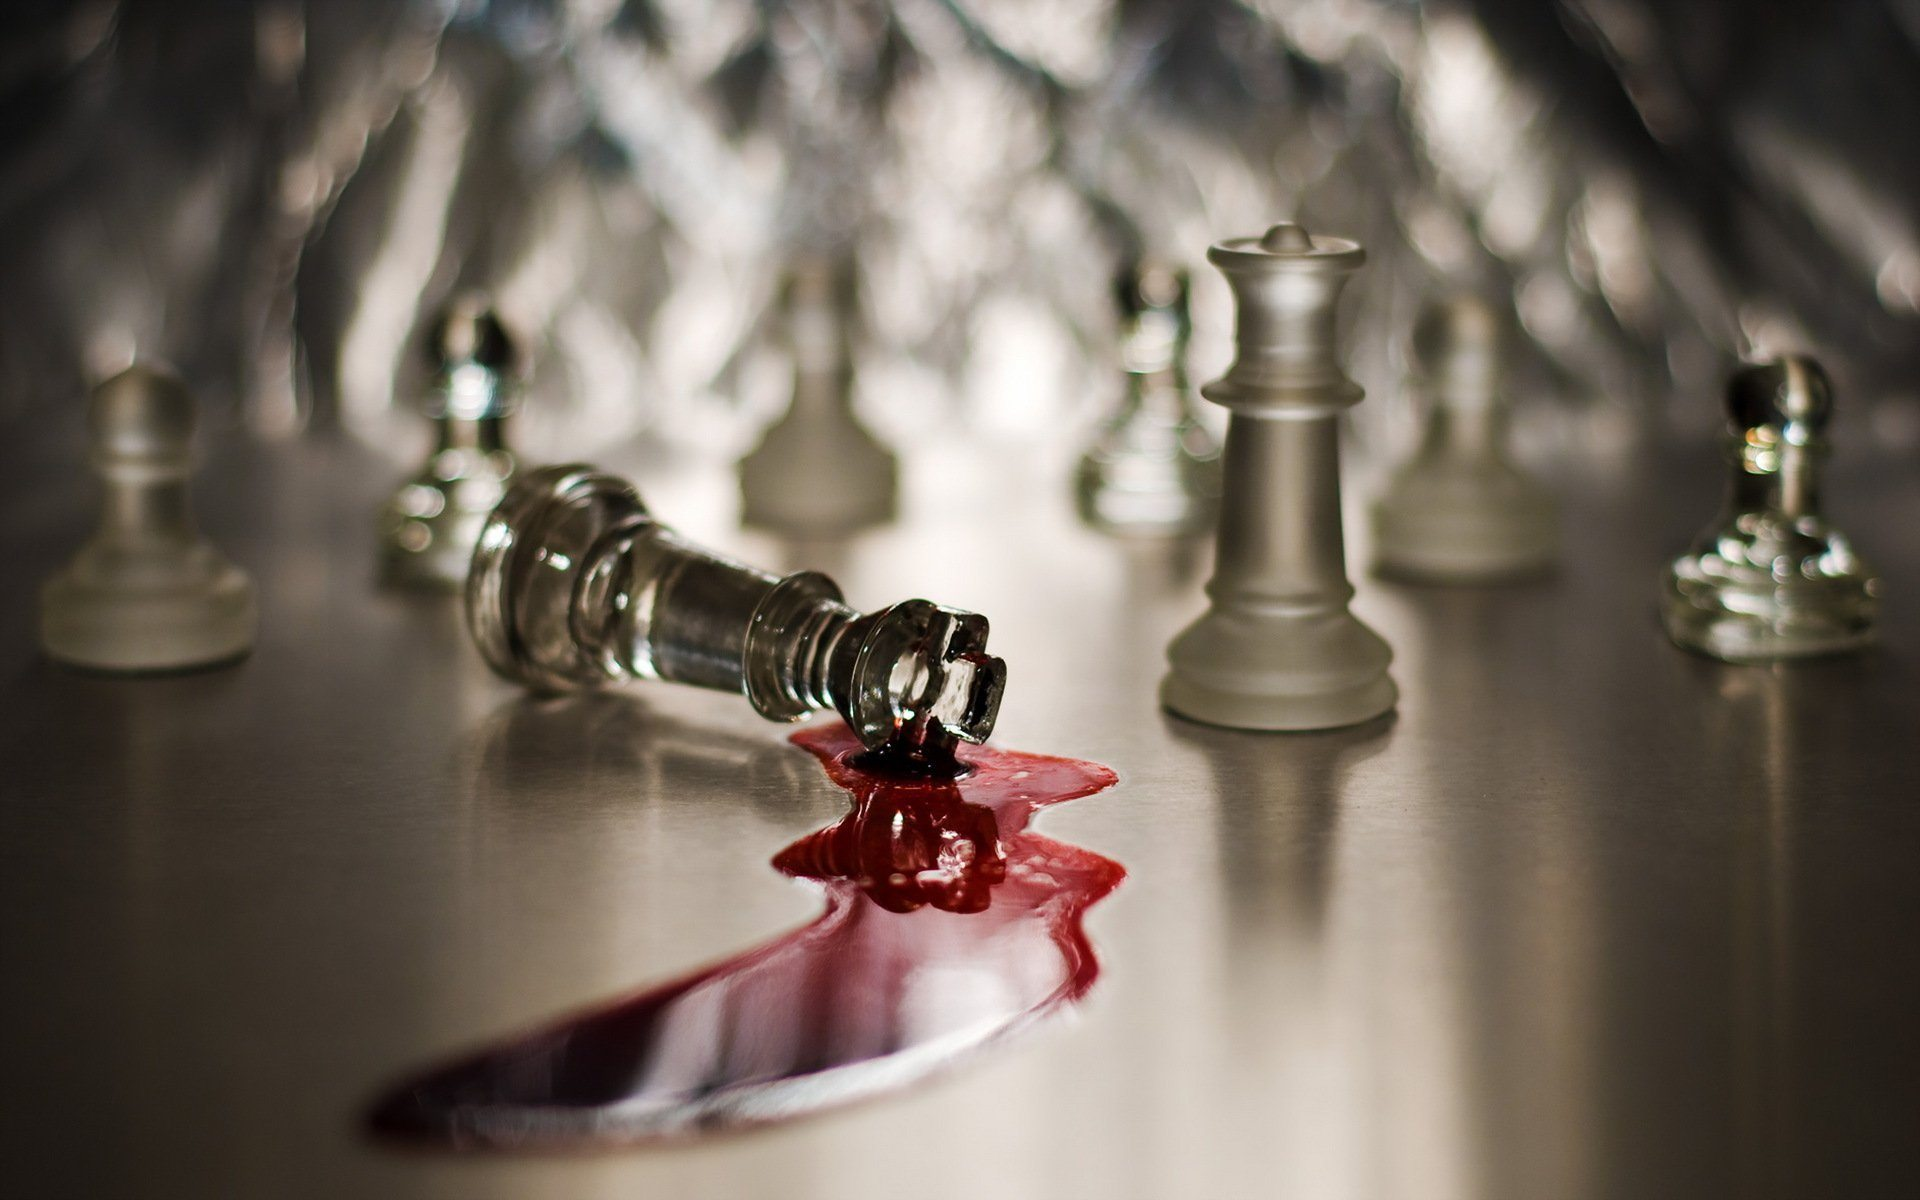 the-game-chess-figures-blood